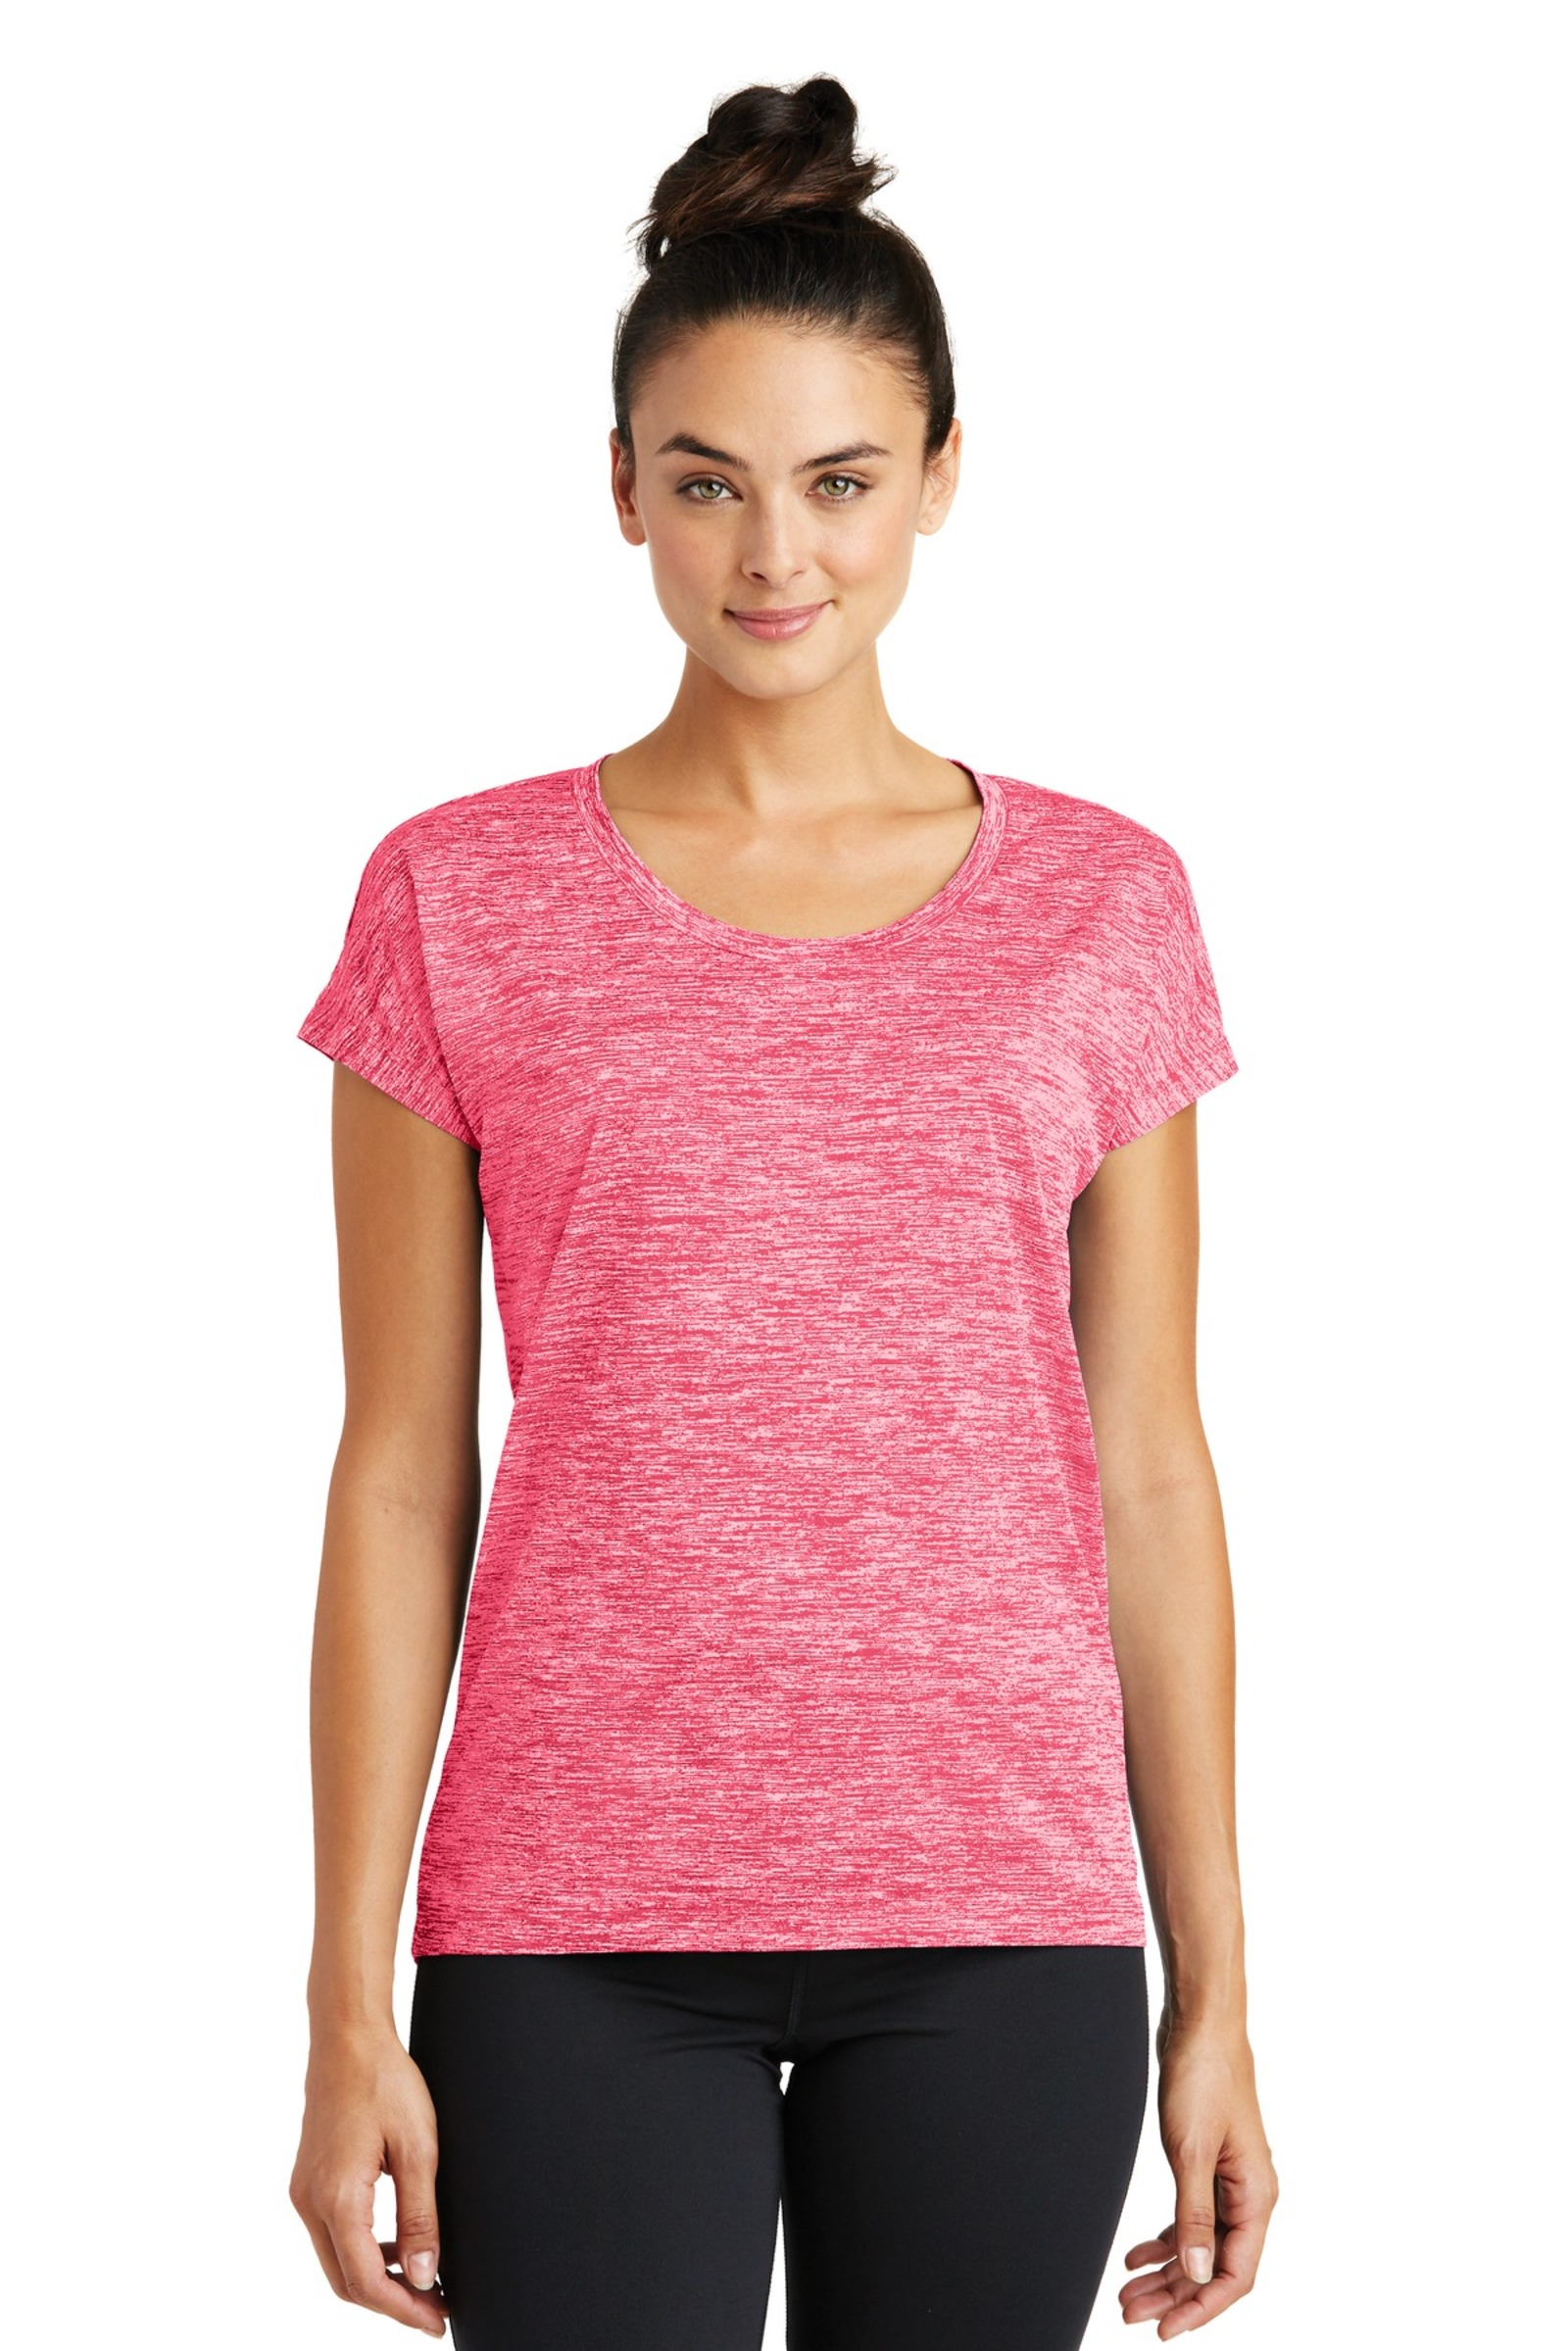 Sport-Tek Printed Women's PosiCharge Electric Heather Tee